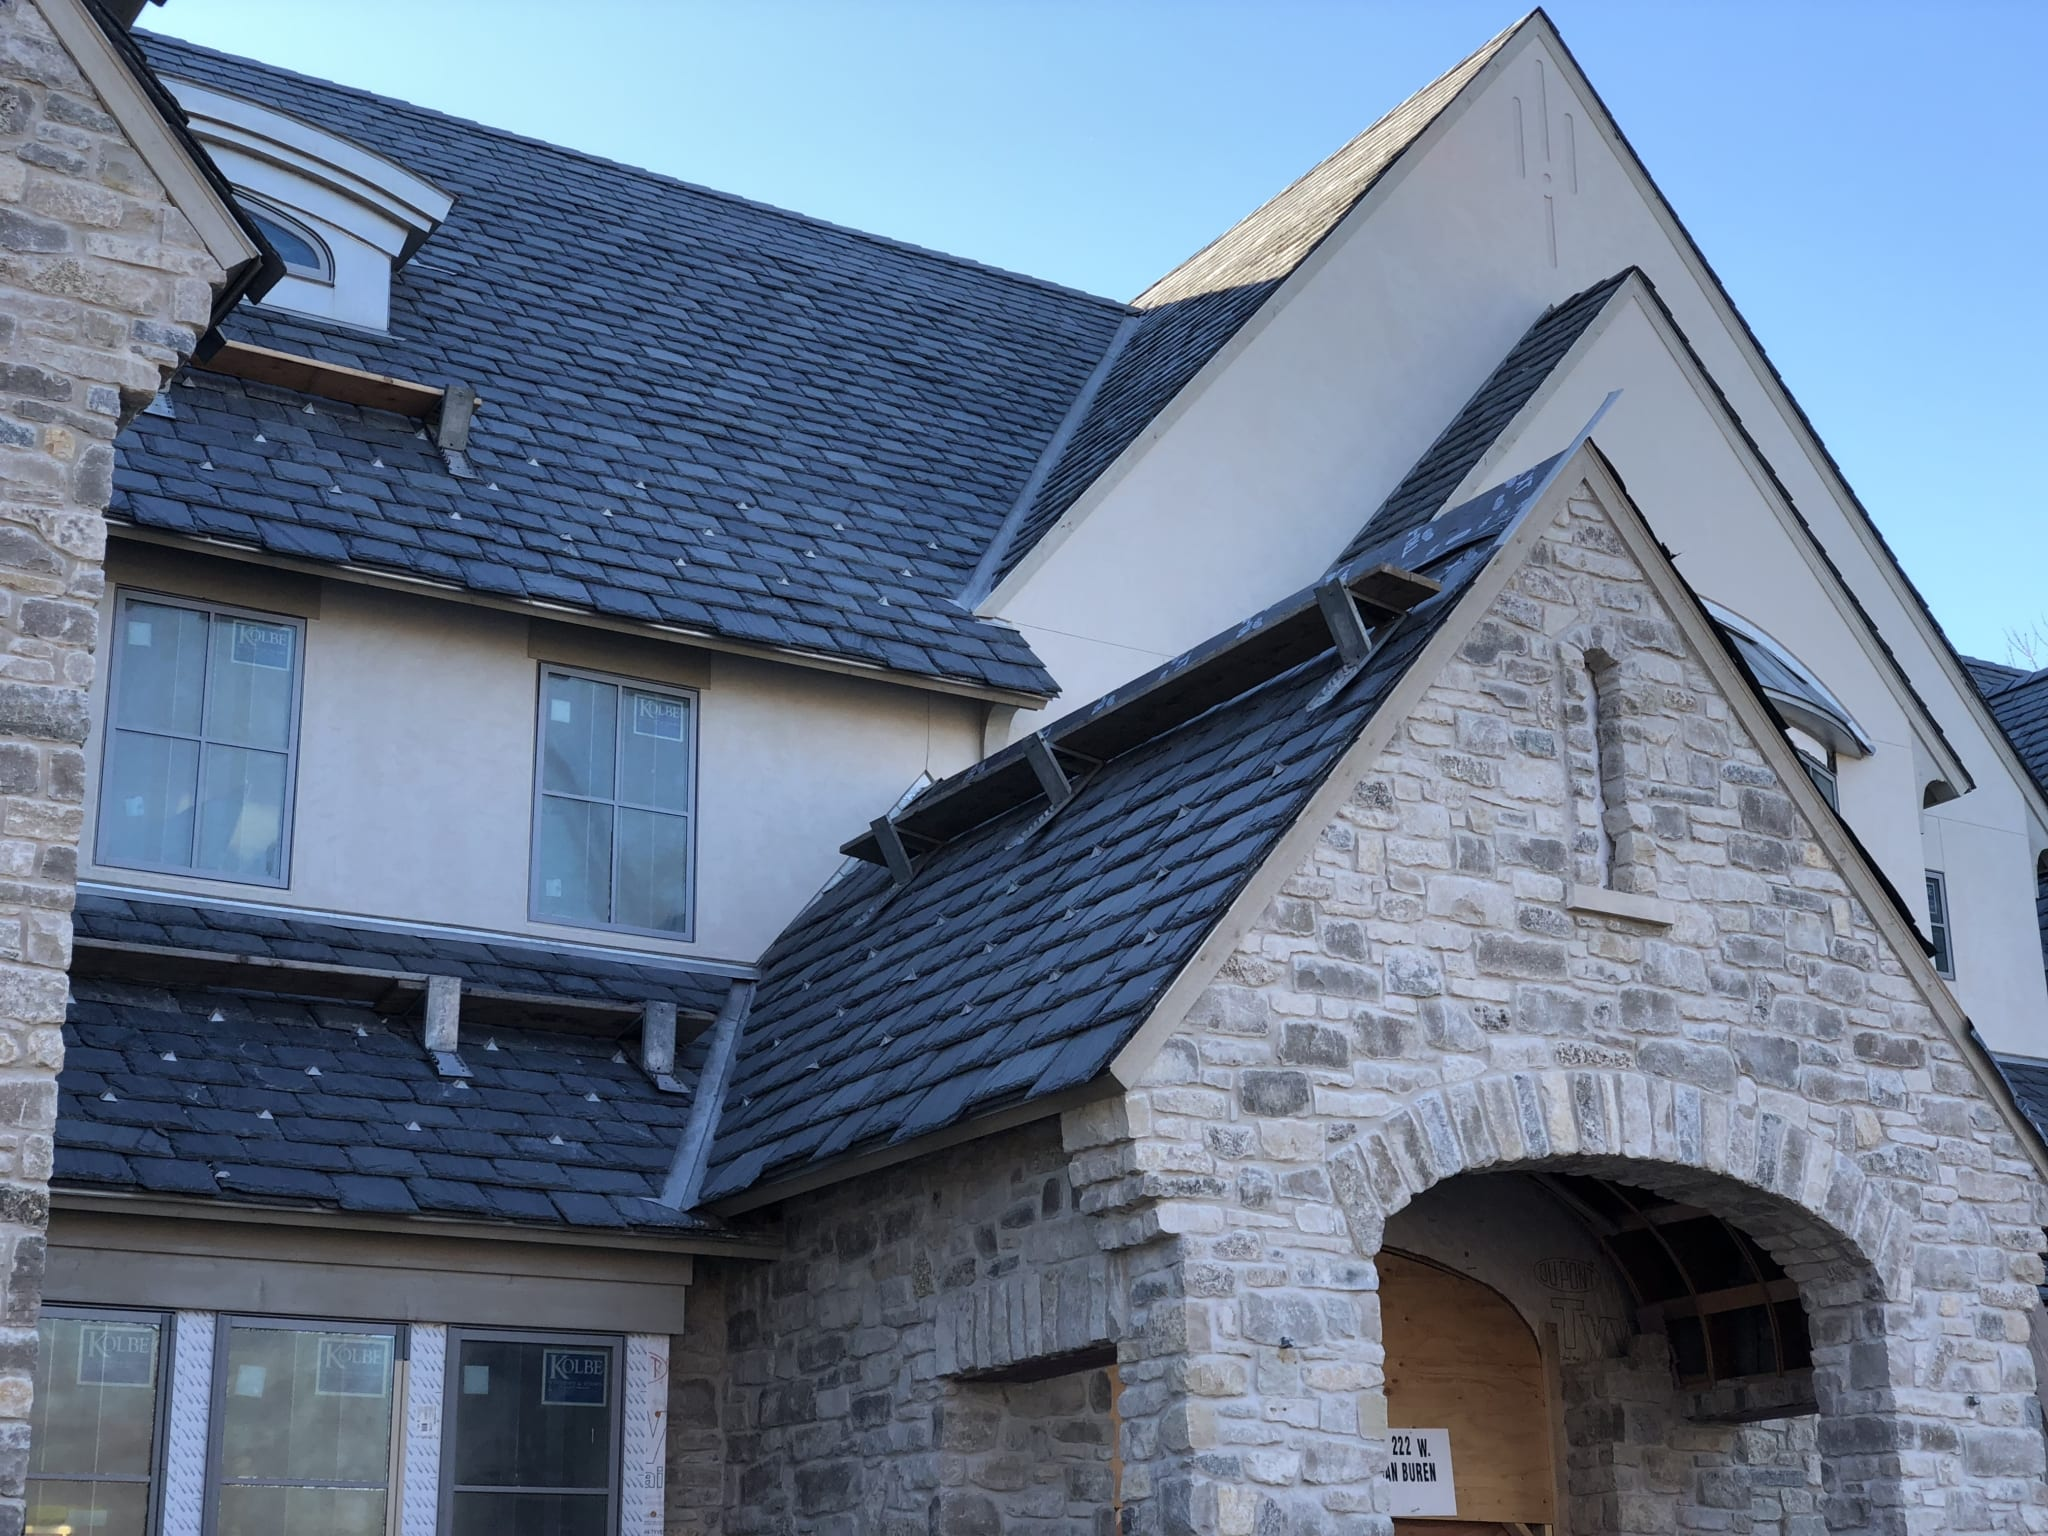 Graduated Slate Roof, Naperville Illinois